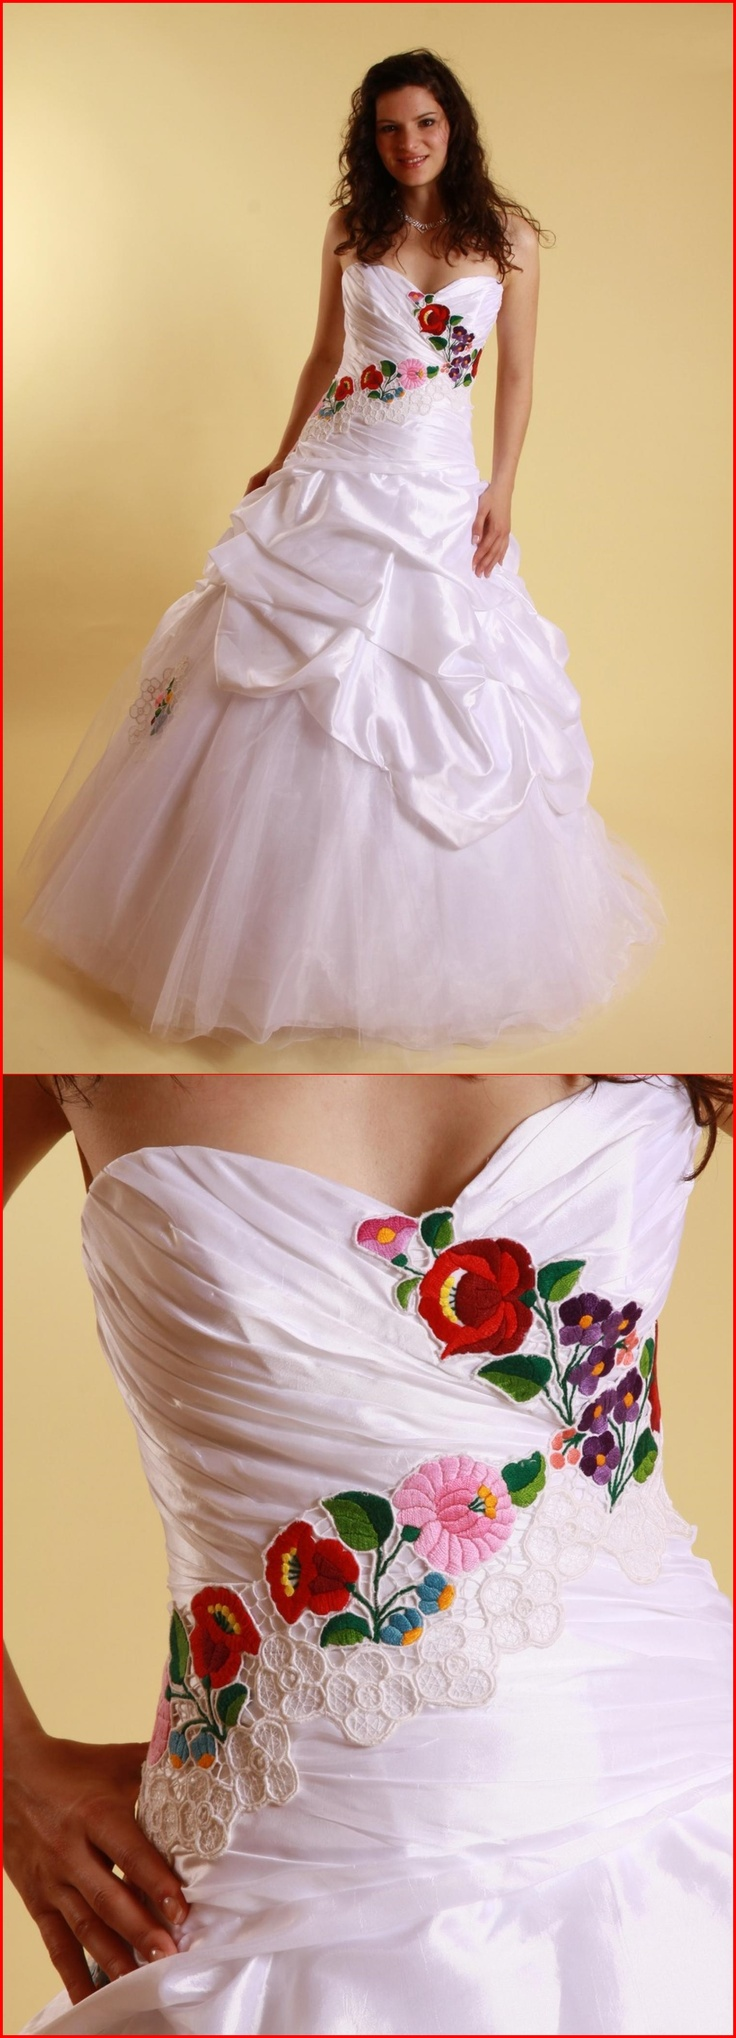 # Hungarian wedding dress # - if only this existed when I got married!